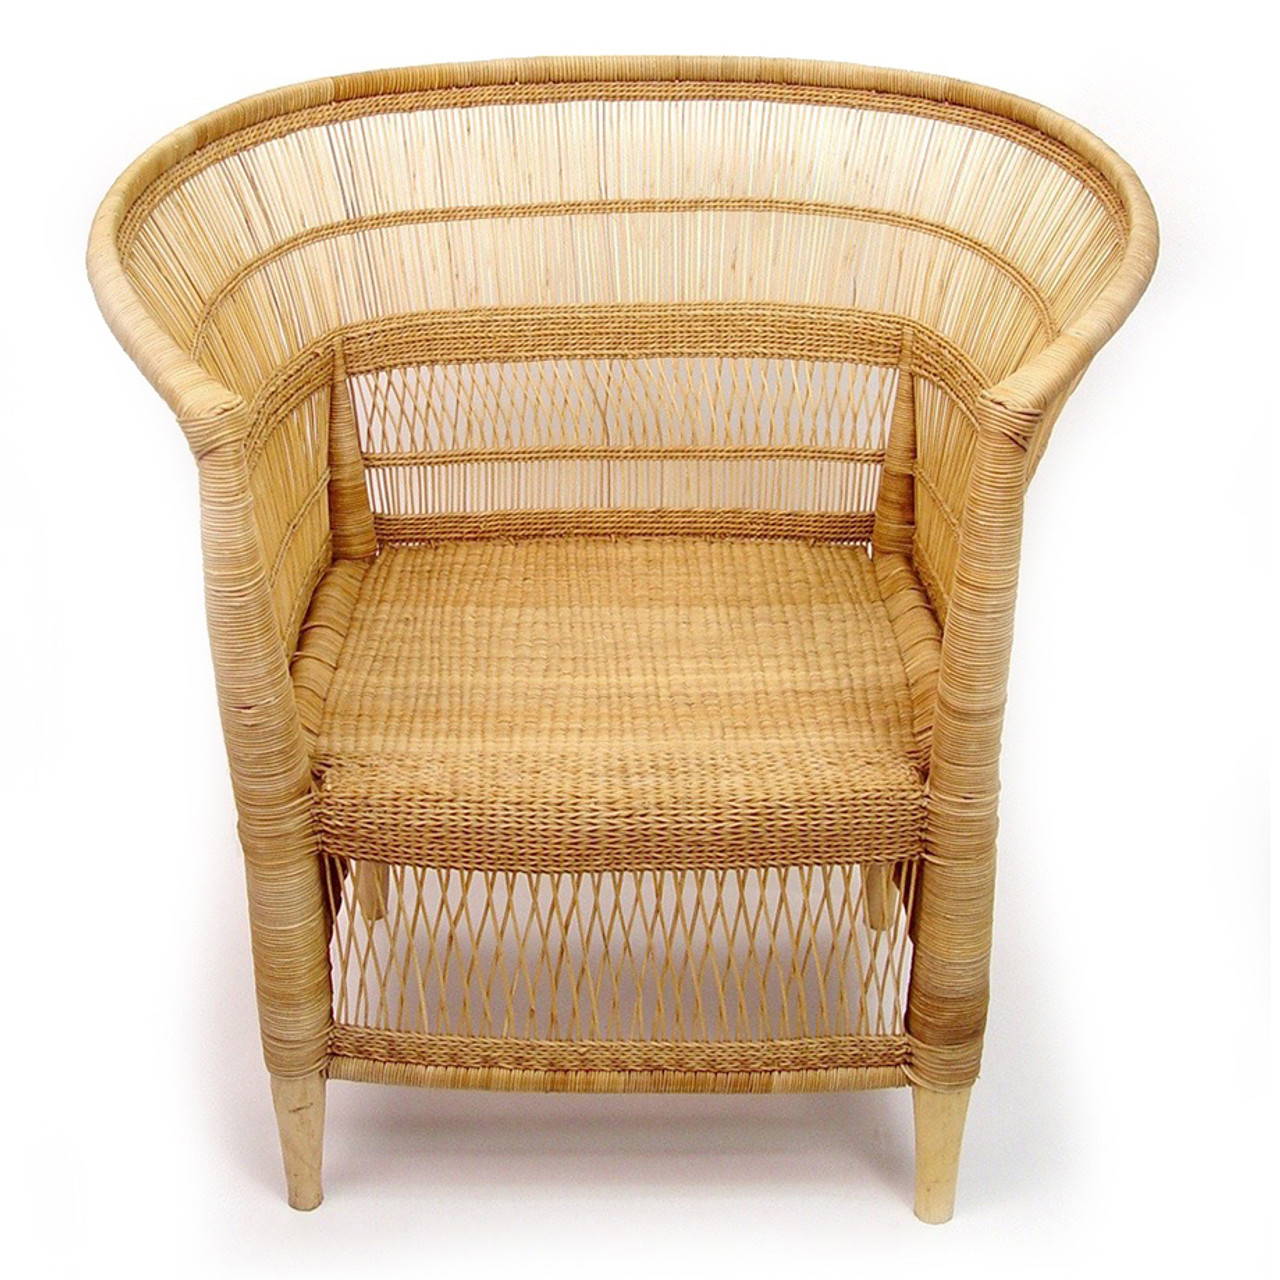 where can i buy cane for chairs computer chair gaming malawi woven natural